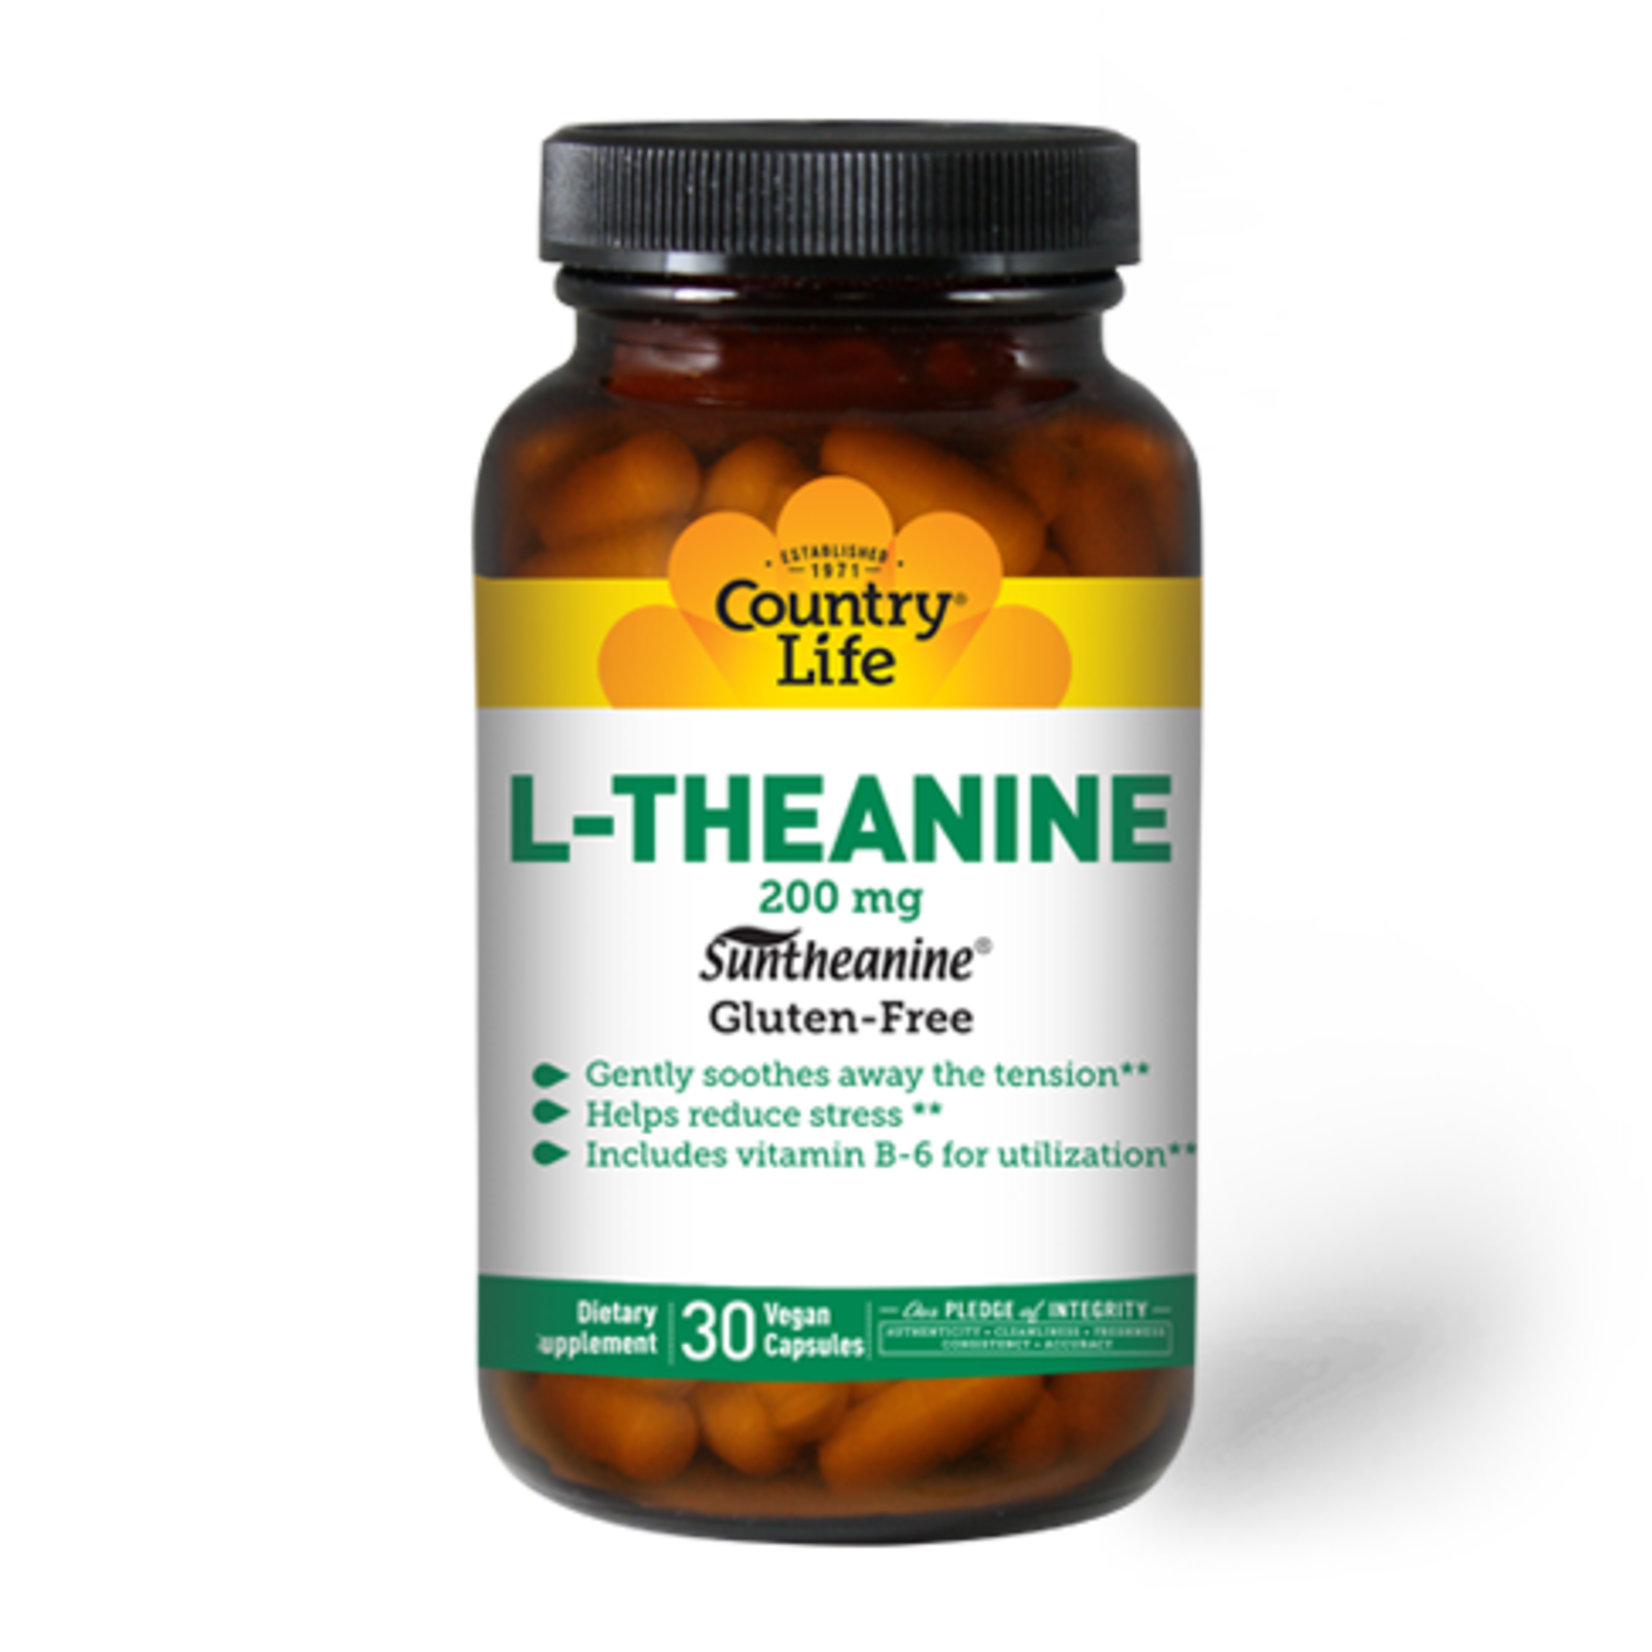 Country Life Country Life L-Theanine 200mg 30 Vegan Capsules